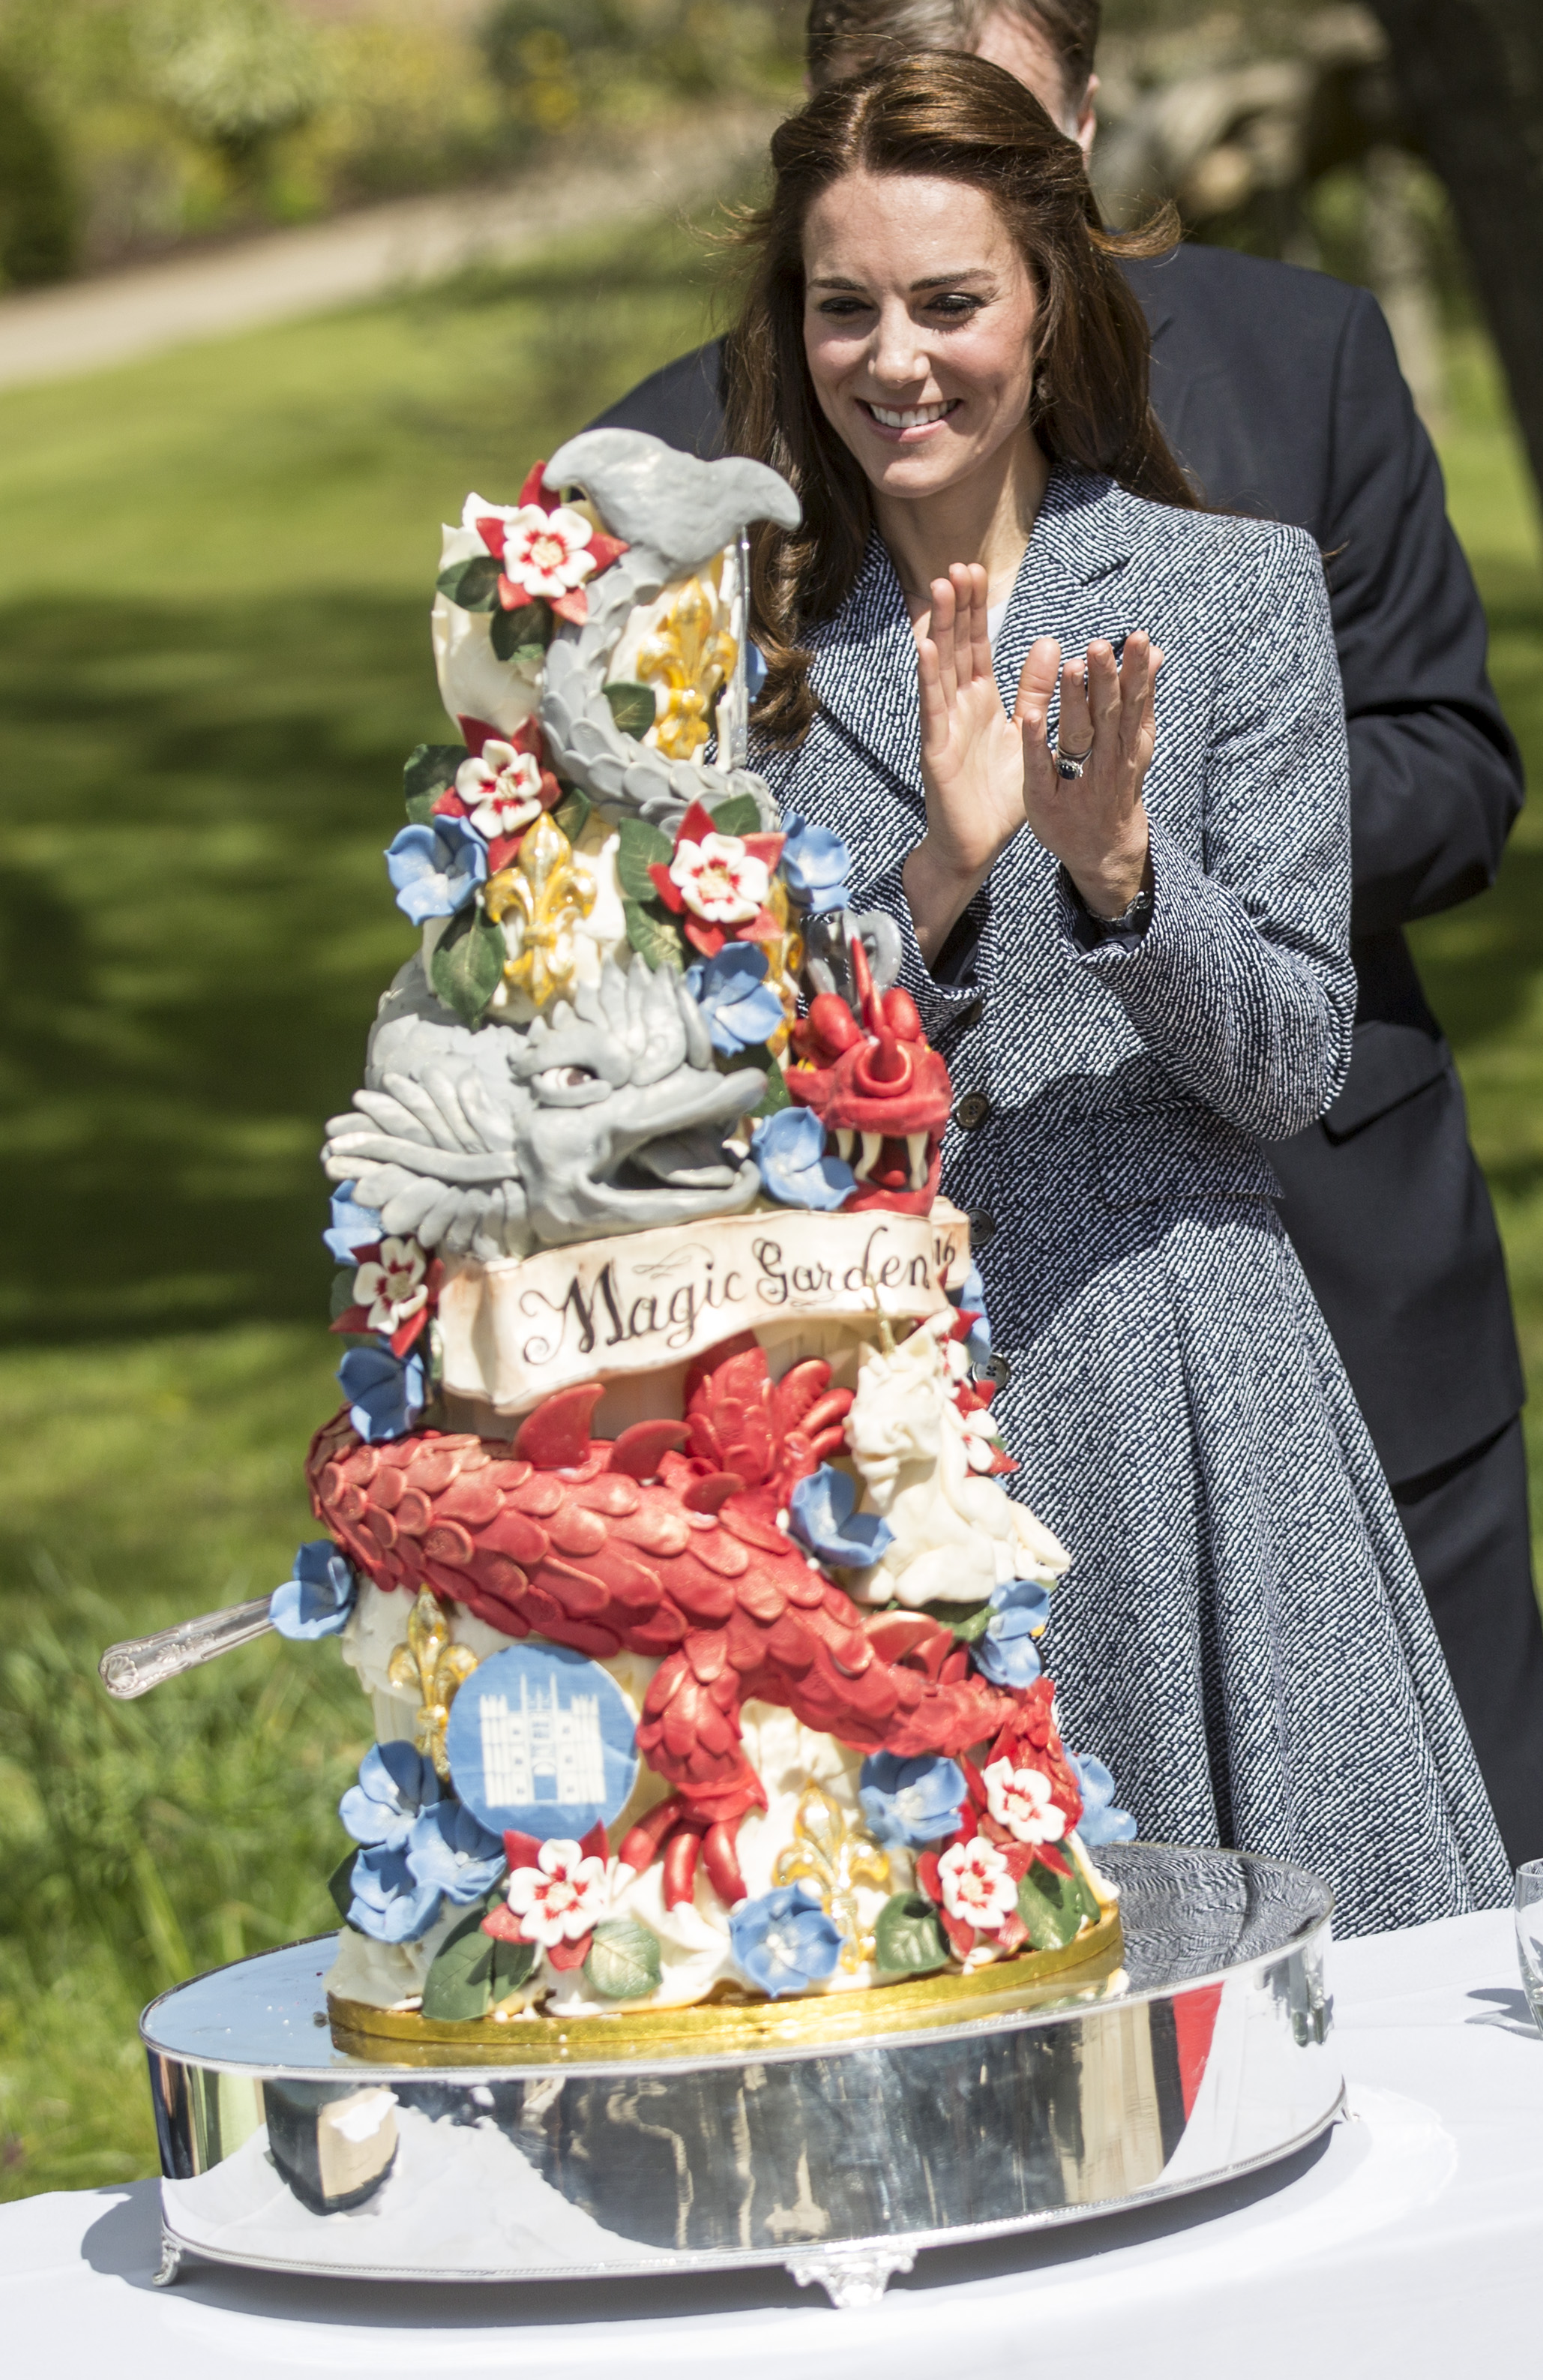 LONDON, ENGLAND - MAY 04: Catherine, Duchess of Cambridge stands next to an ornate cake decorated with dragons and magical creatures baked especially for the opening as she officially opens The Magic Garden at Hampton Court Palace on May 4, 2016 in London, England.